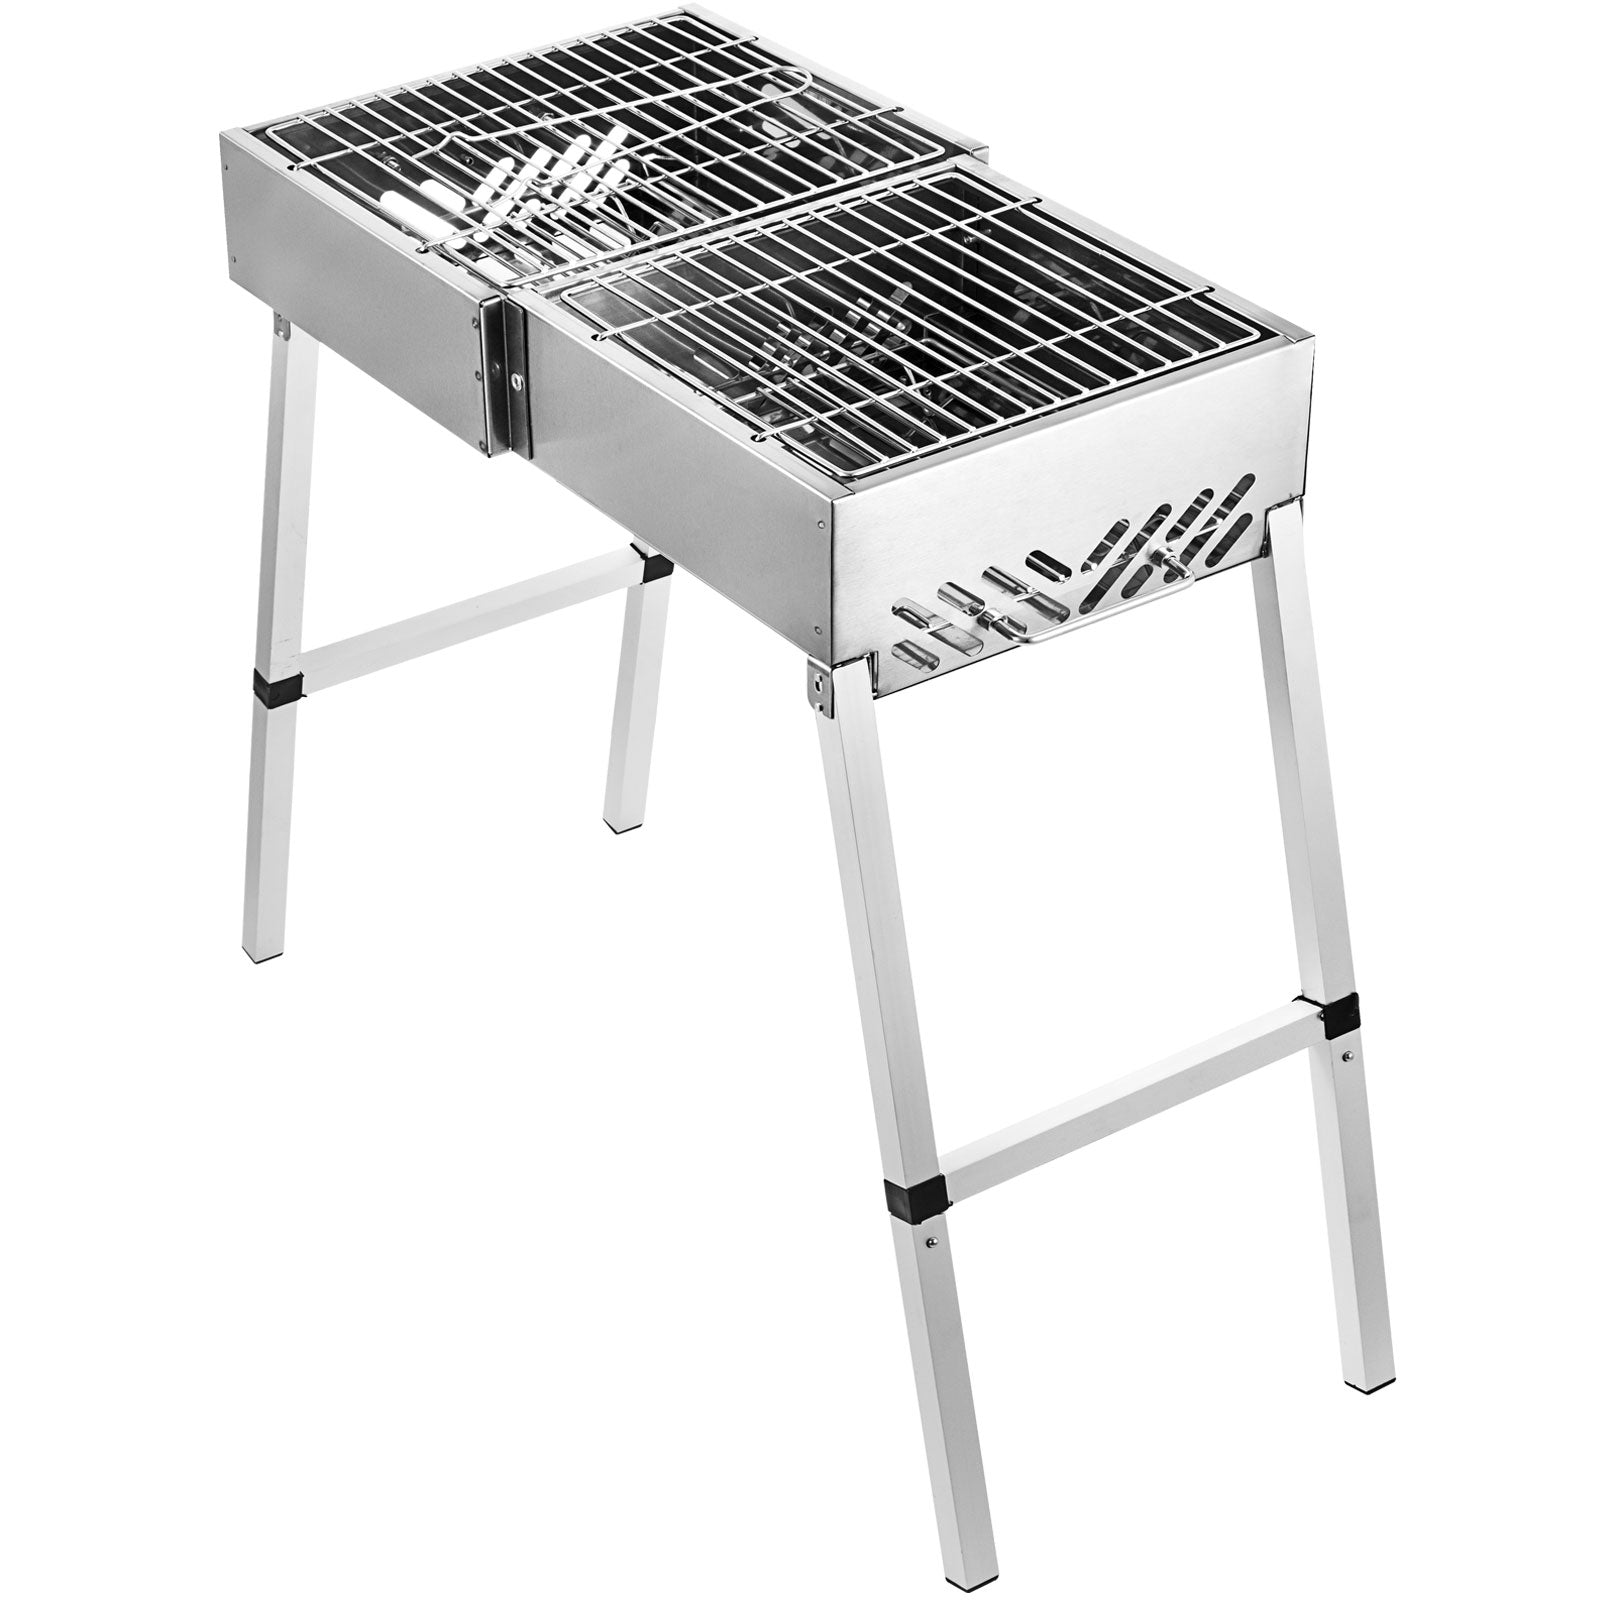 Barbecue à Charbon Pliable Grille Portable Bbq Table Charbon Inox Jardin